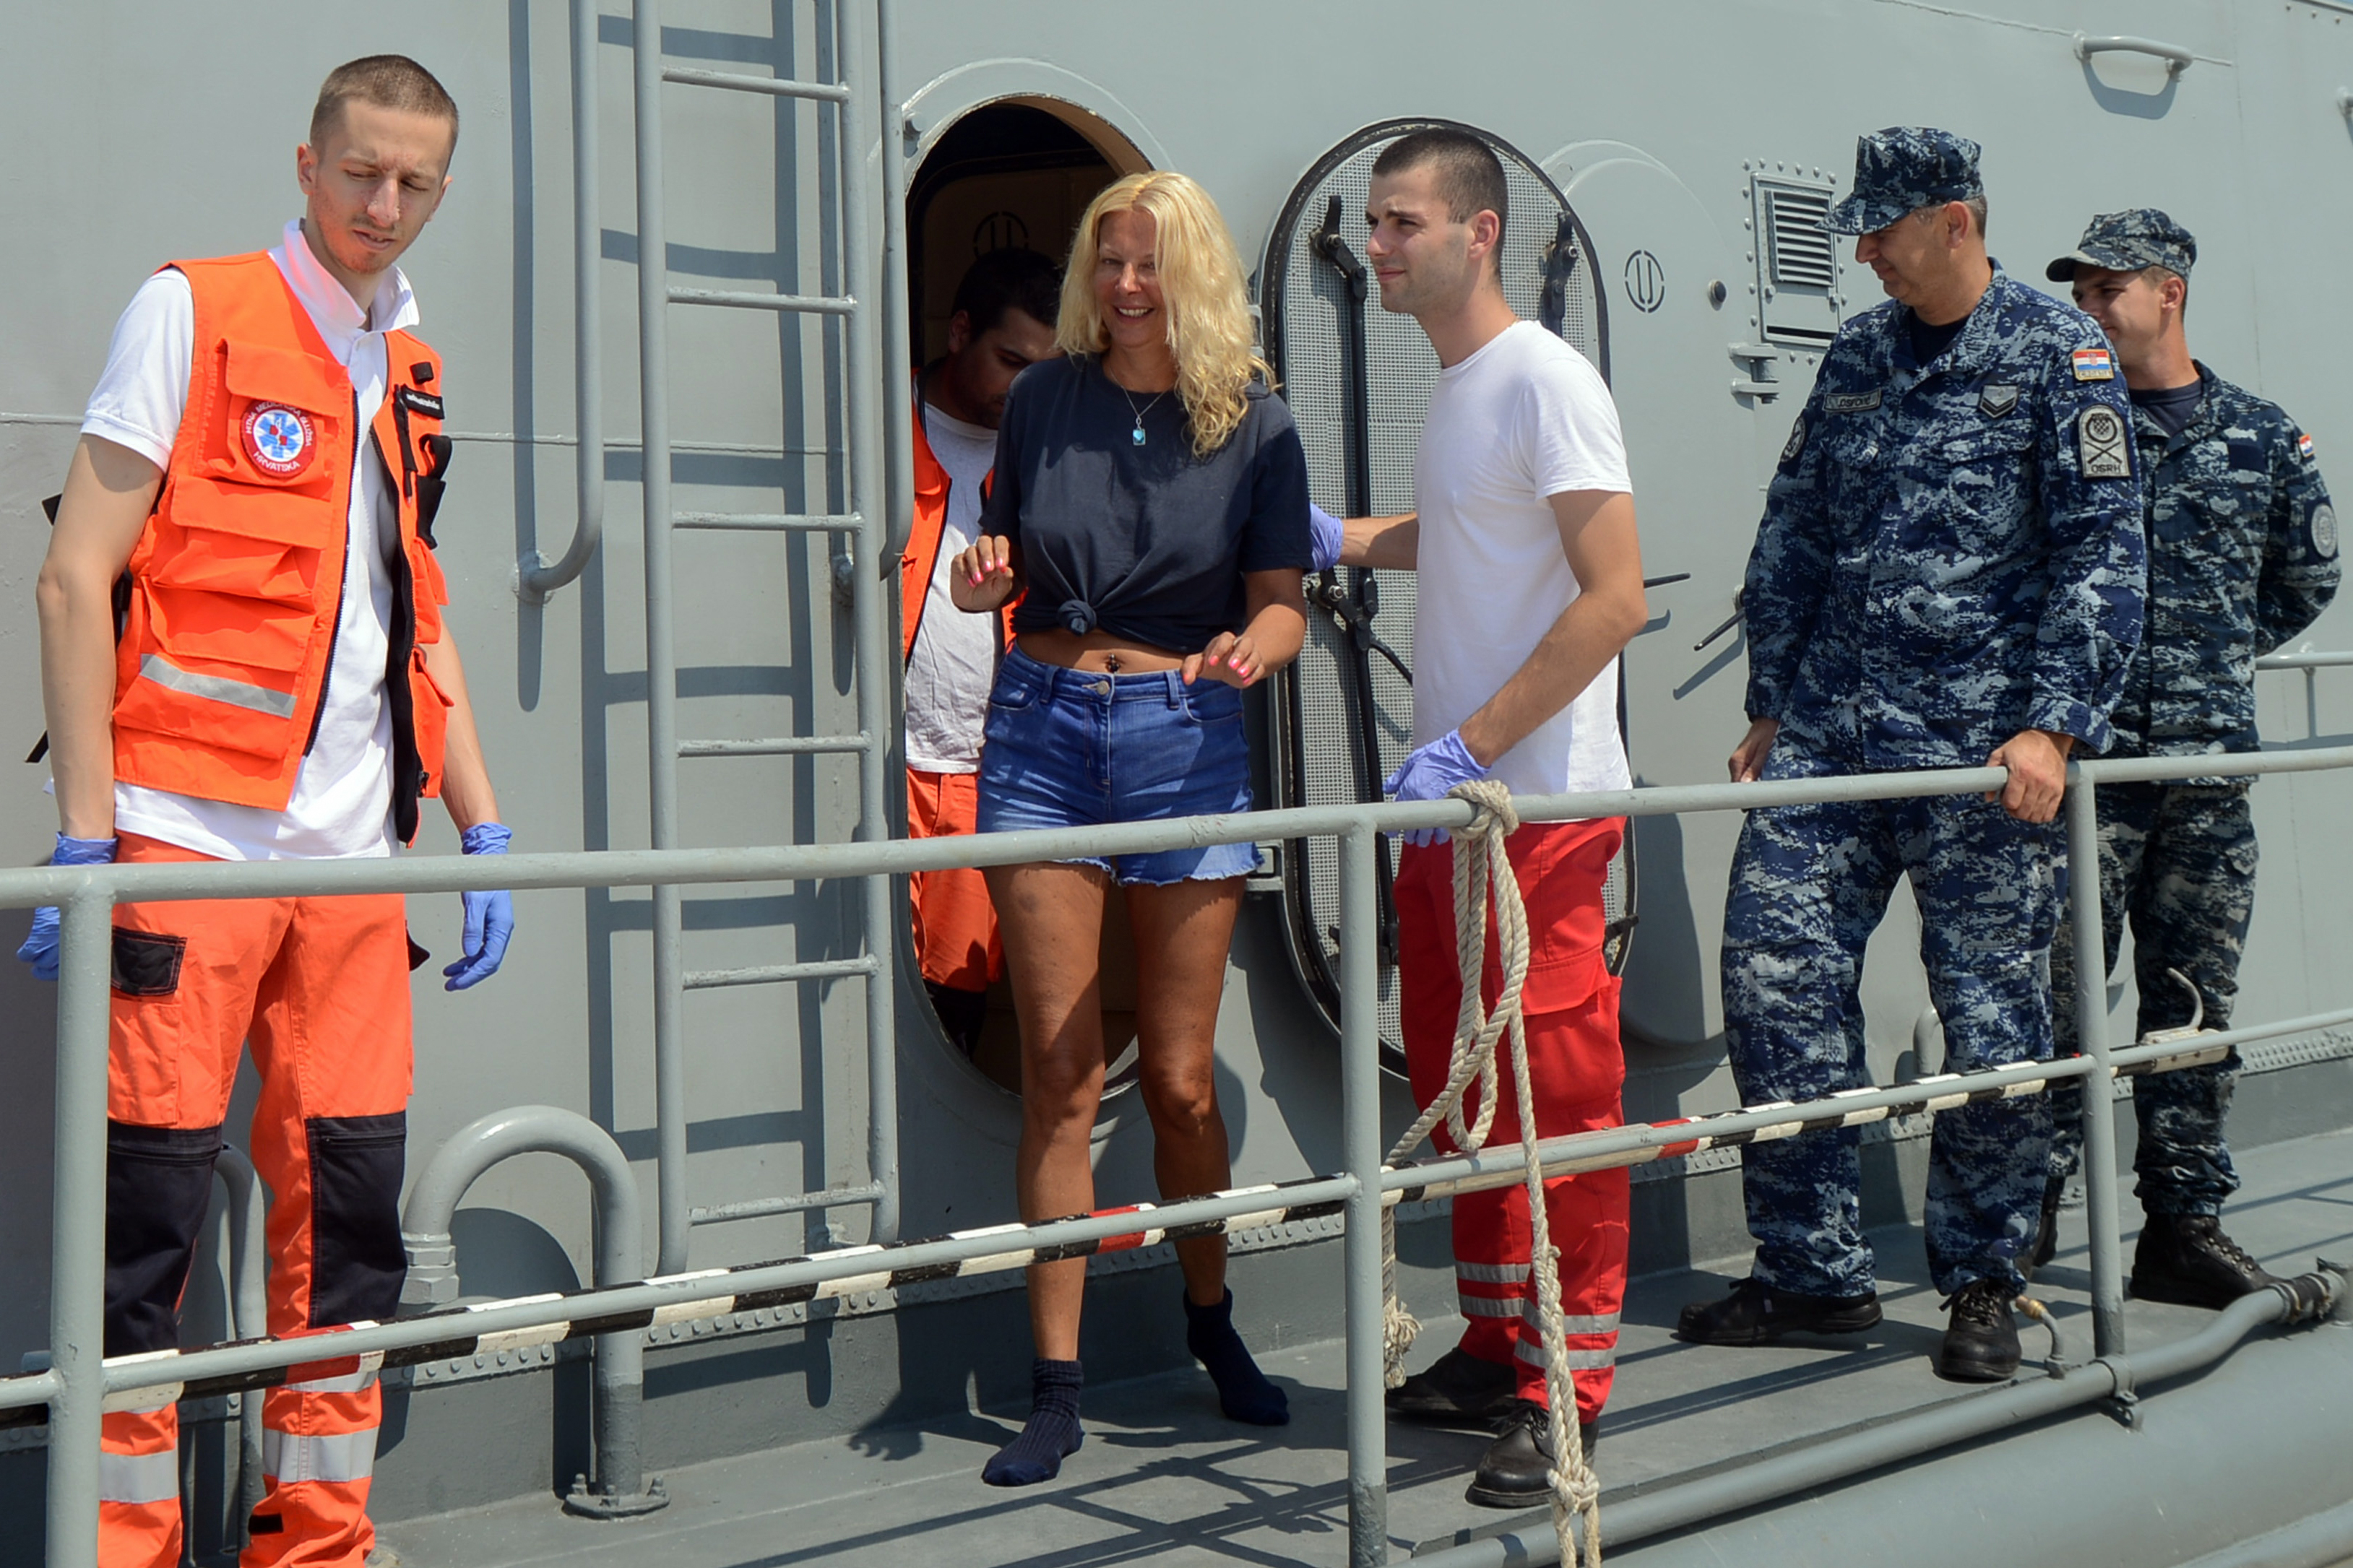 British tourist Kay Longstaff (C) exits Croatias coast guard ship in Pula, on August 19, 2018, which saved her after falling off a cruise ship near Croatian coast.